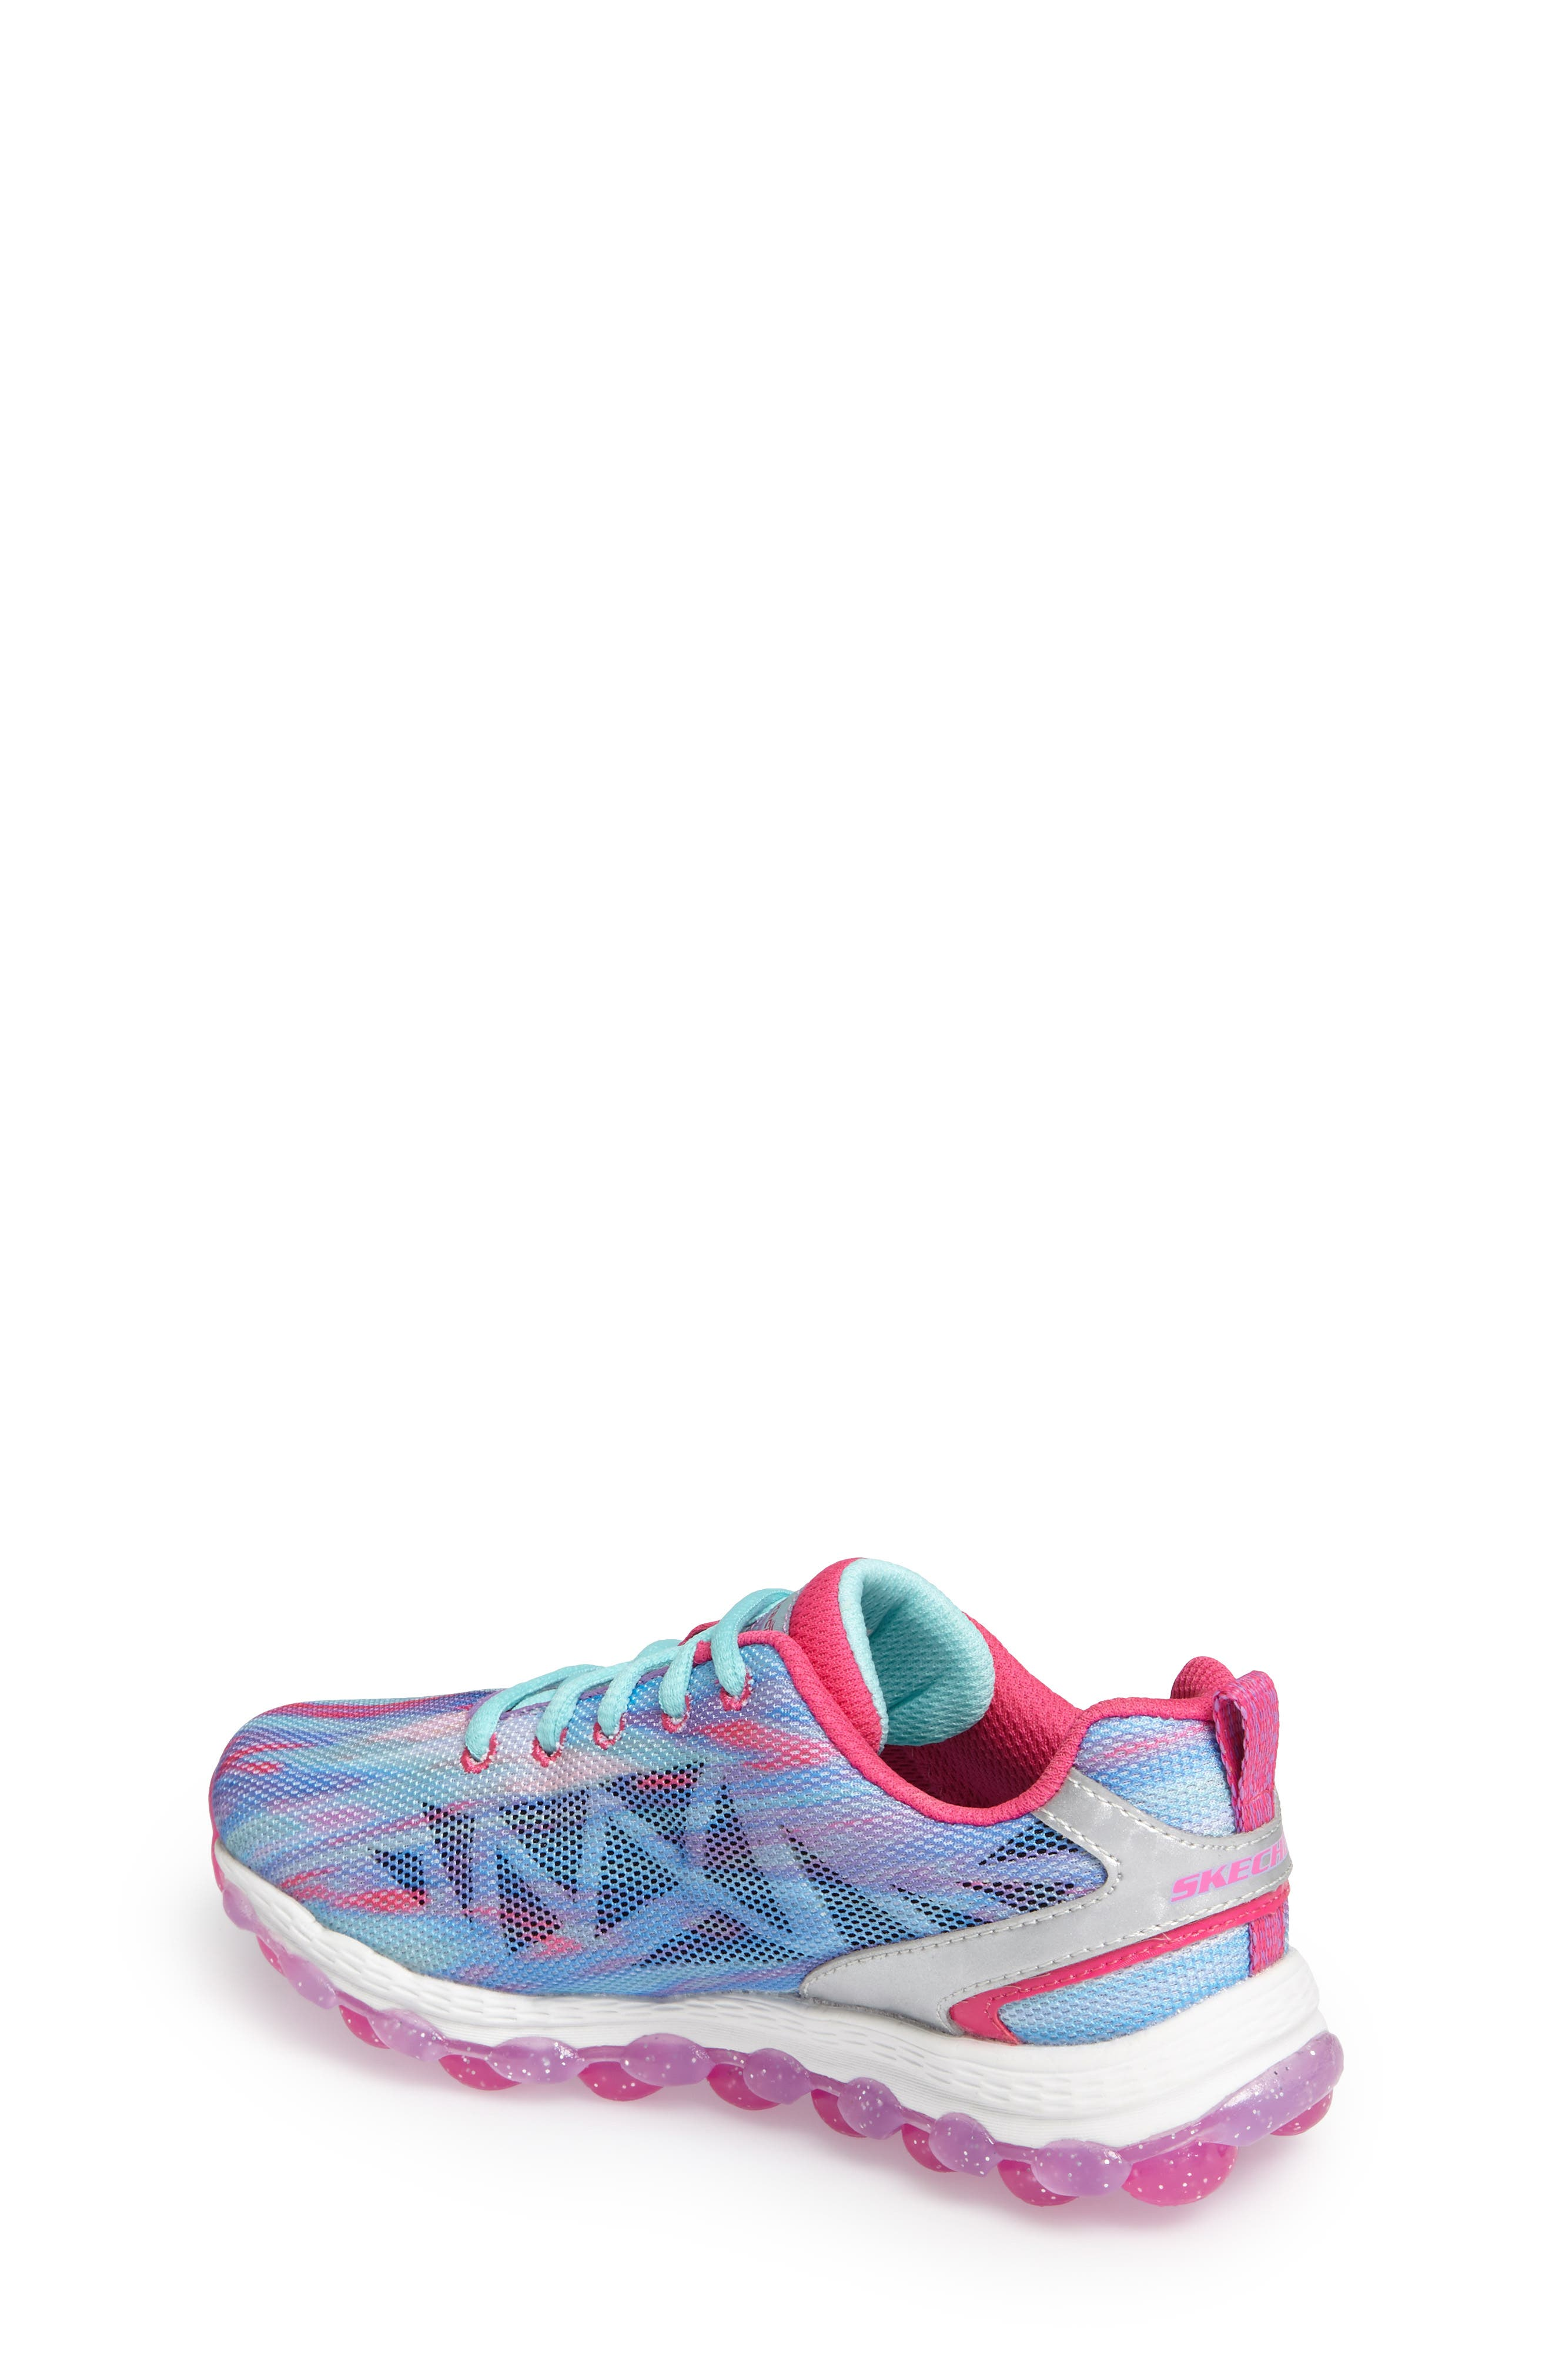 Skech-Air Ultra Sneaker,                             Alternate thumbnail 2, color,                             650